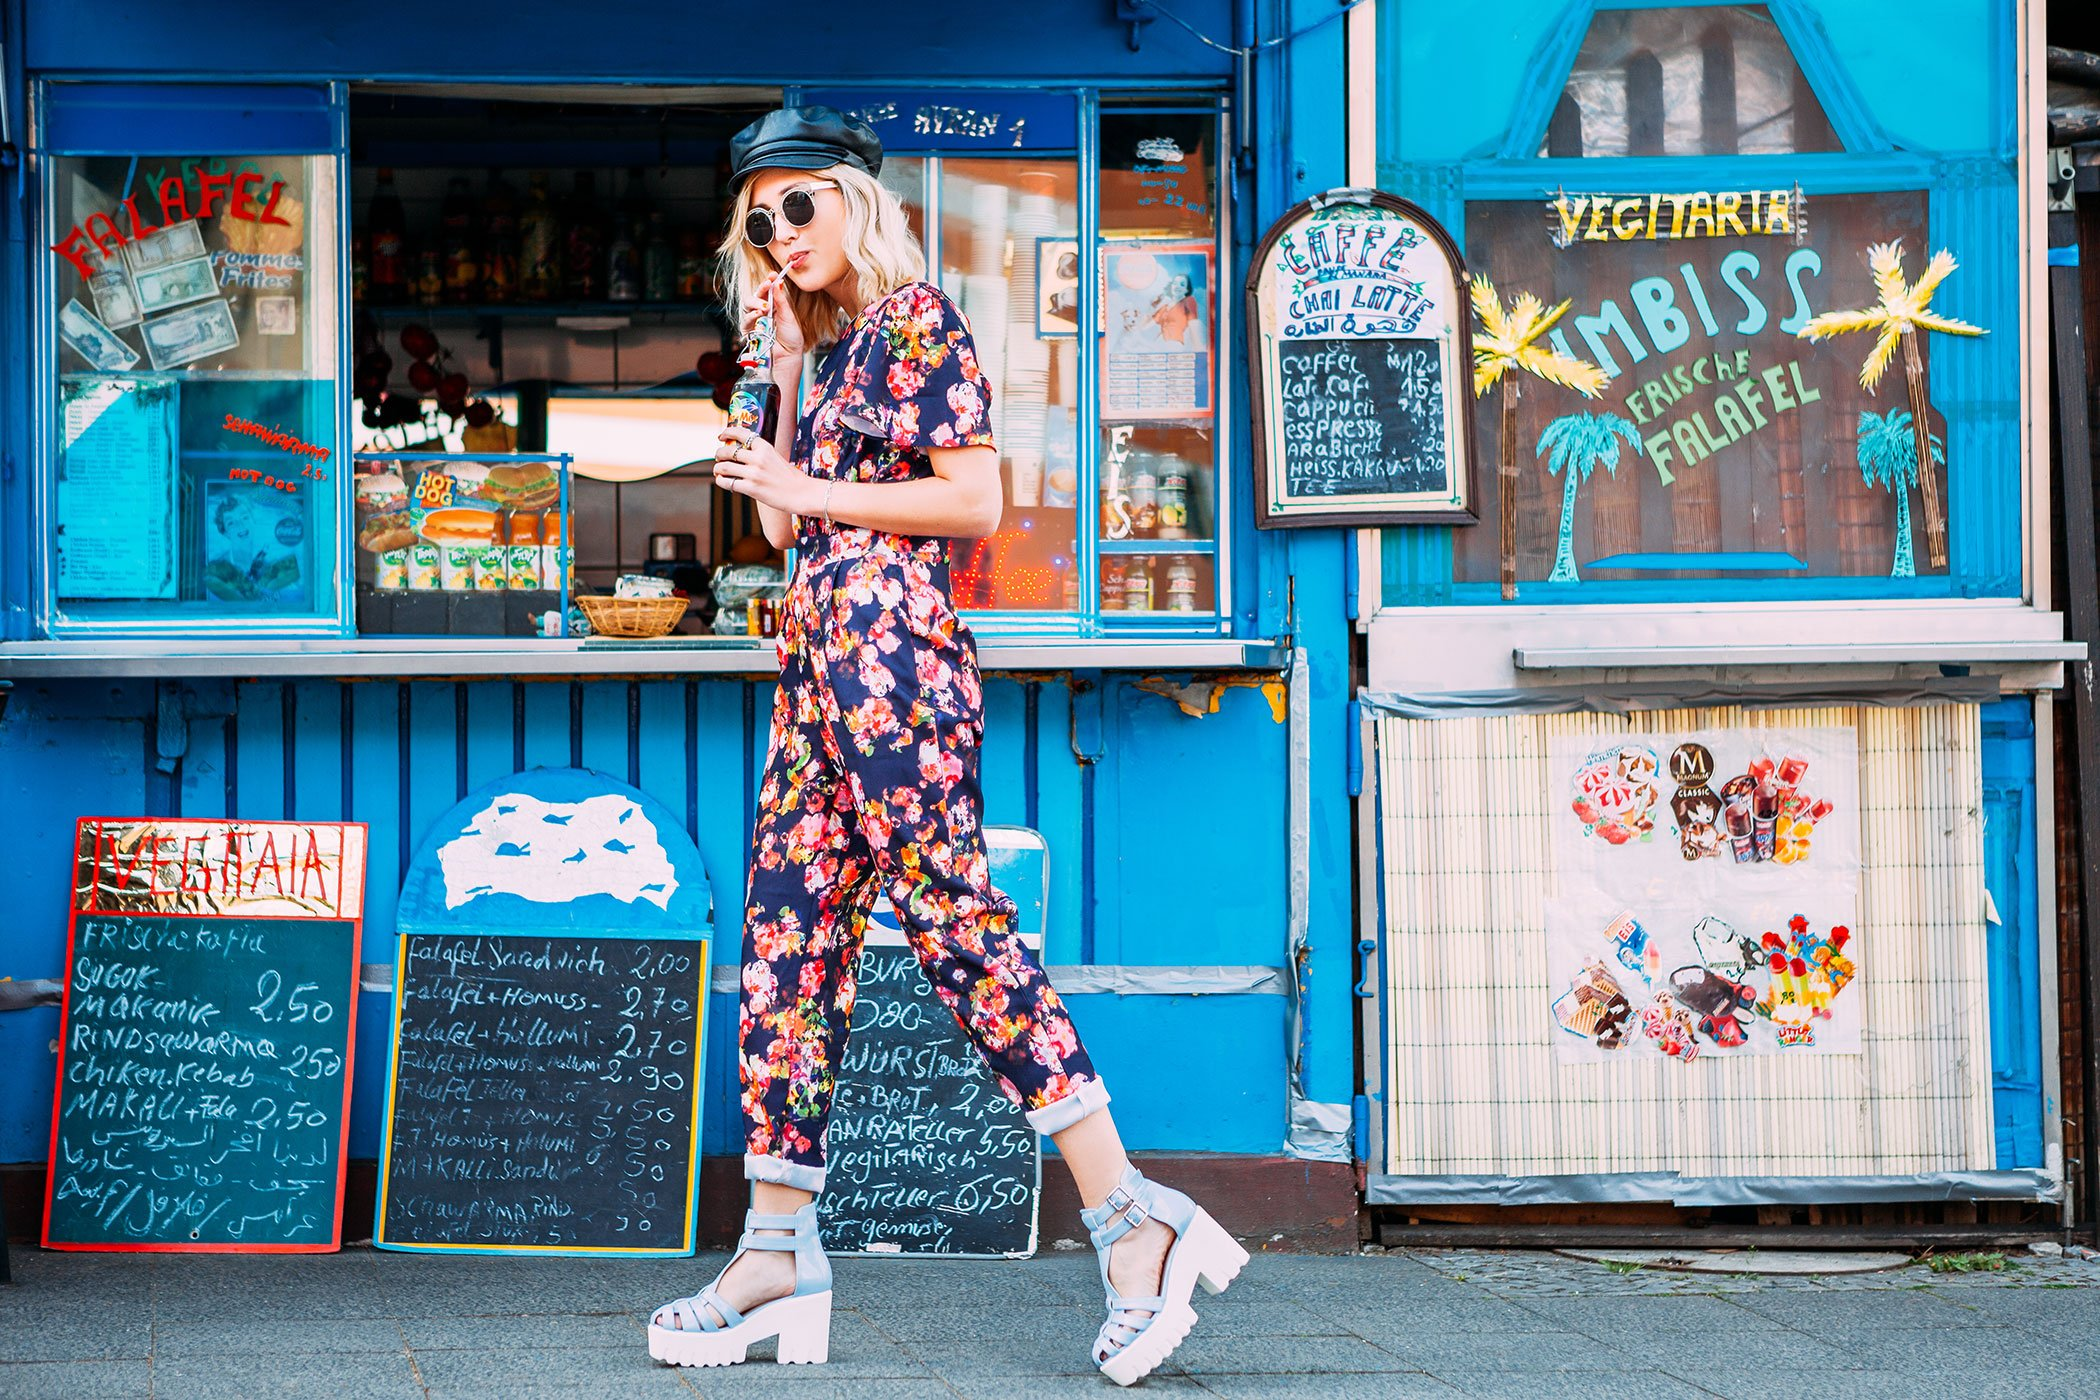 mikuta with flower jumpsuit at the kiosk